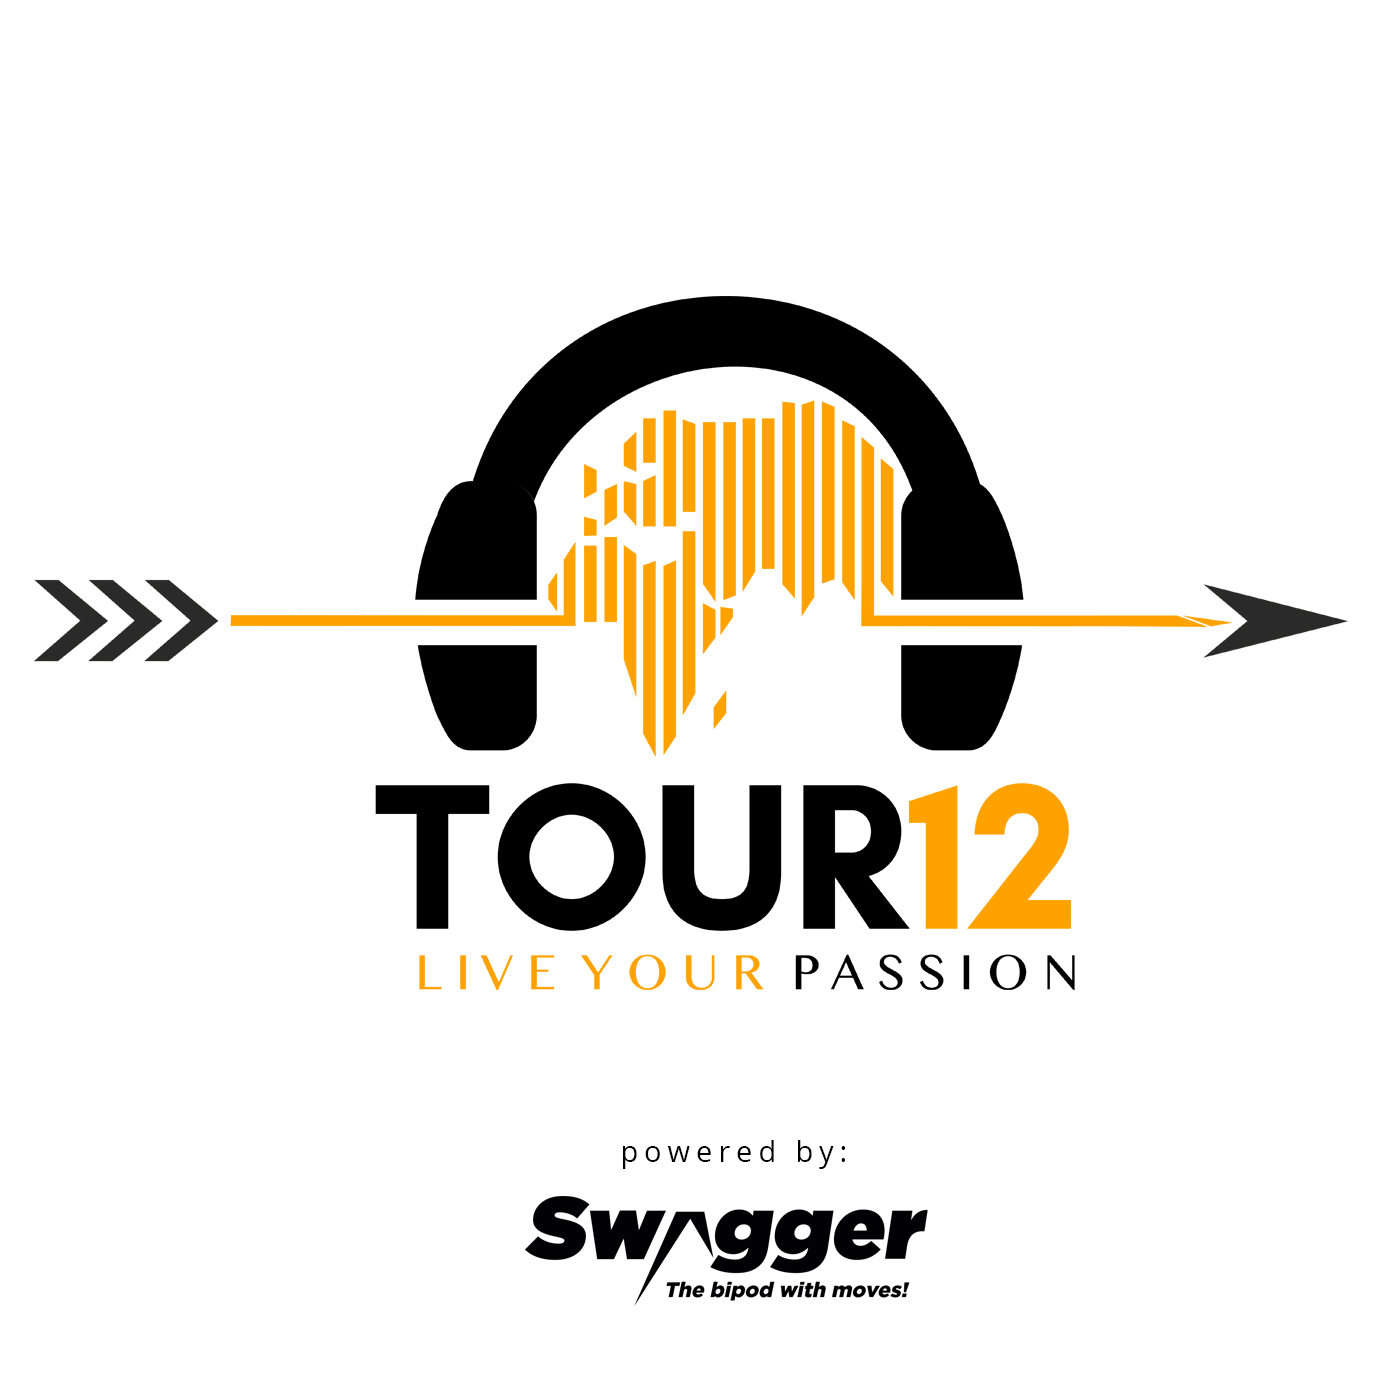 Episode 94 - Tour 12 Catchup